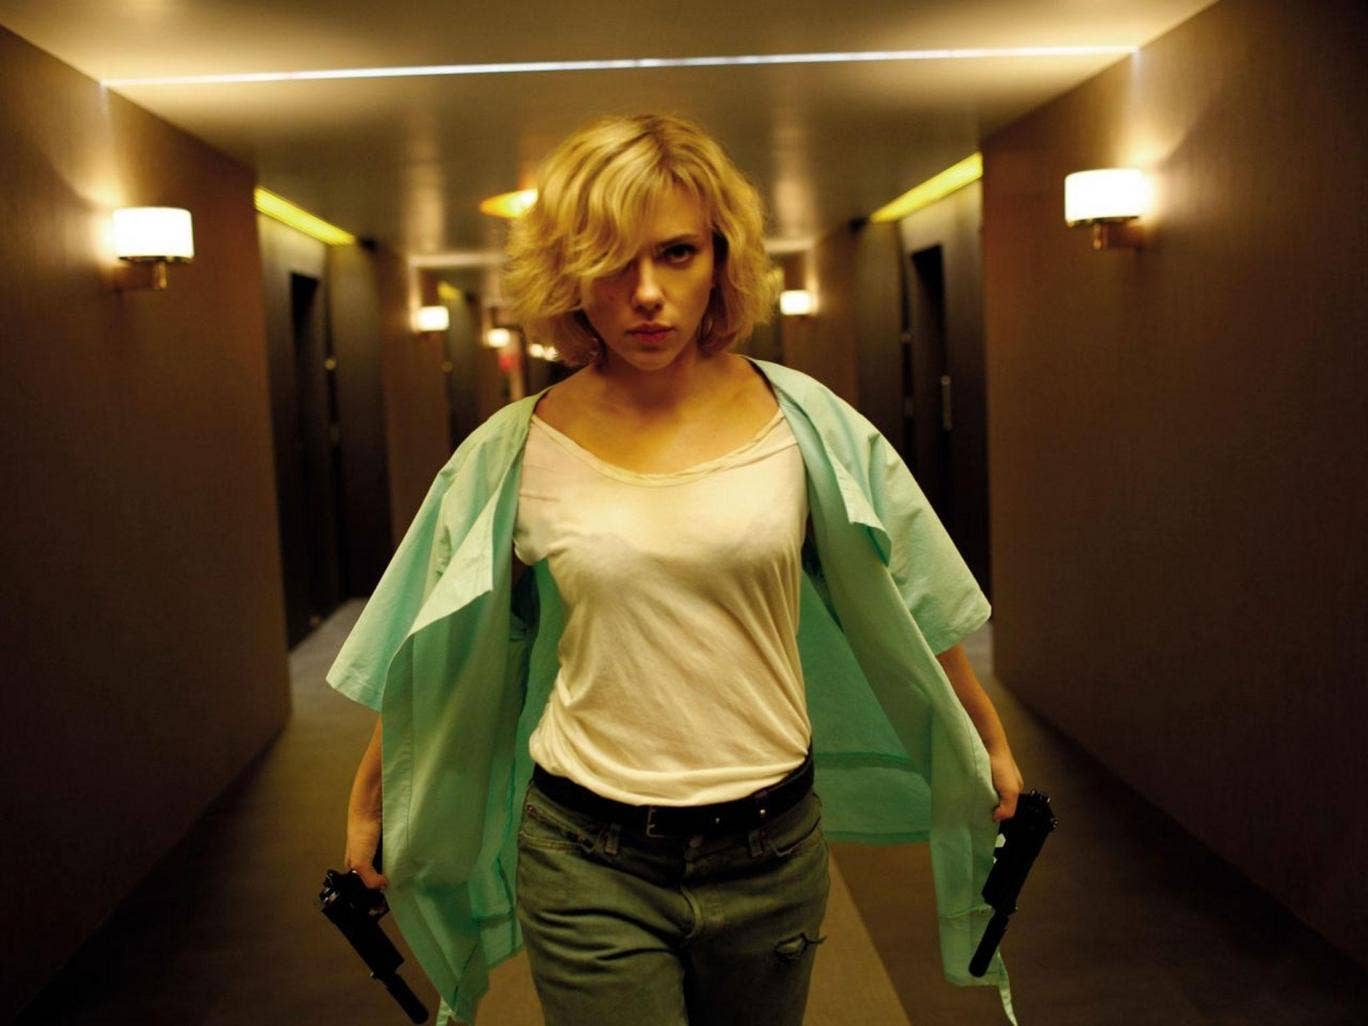 Loaded weapon:  drugs have surprise side effects for Scarlett Johansson in Luc Besson's 'Lucy'